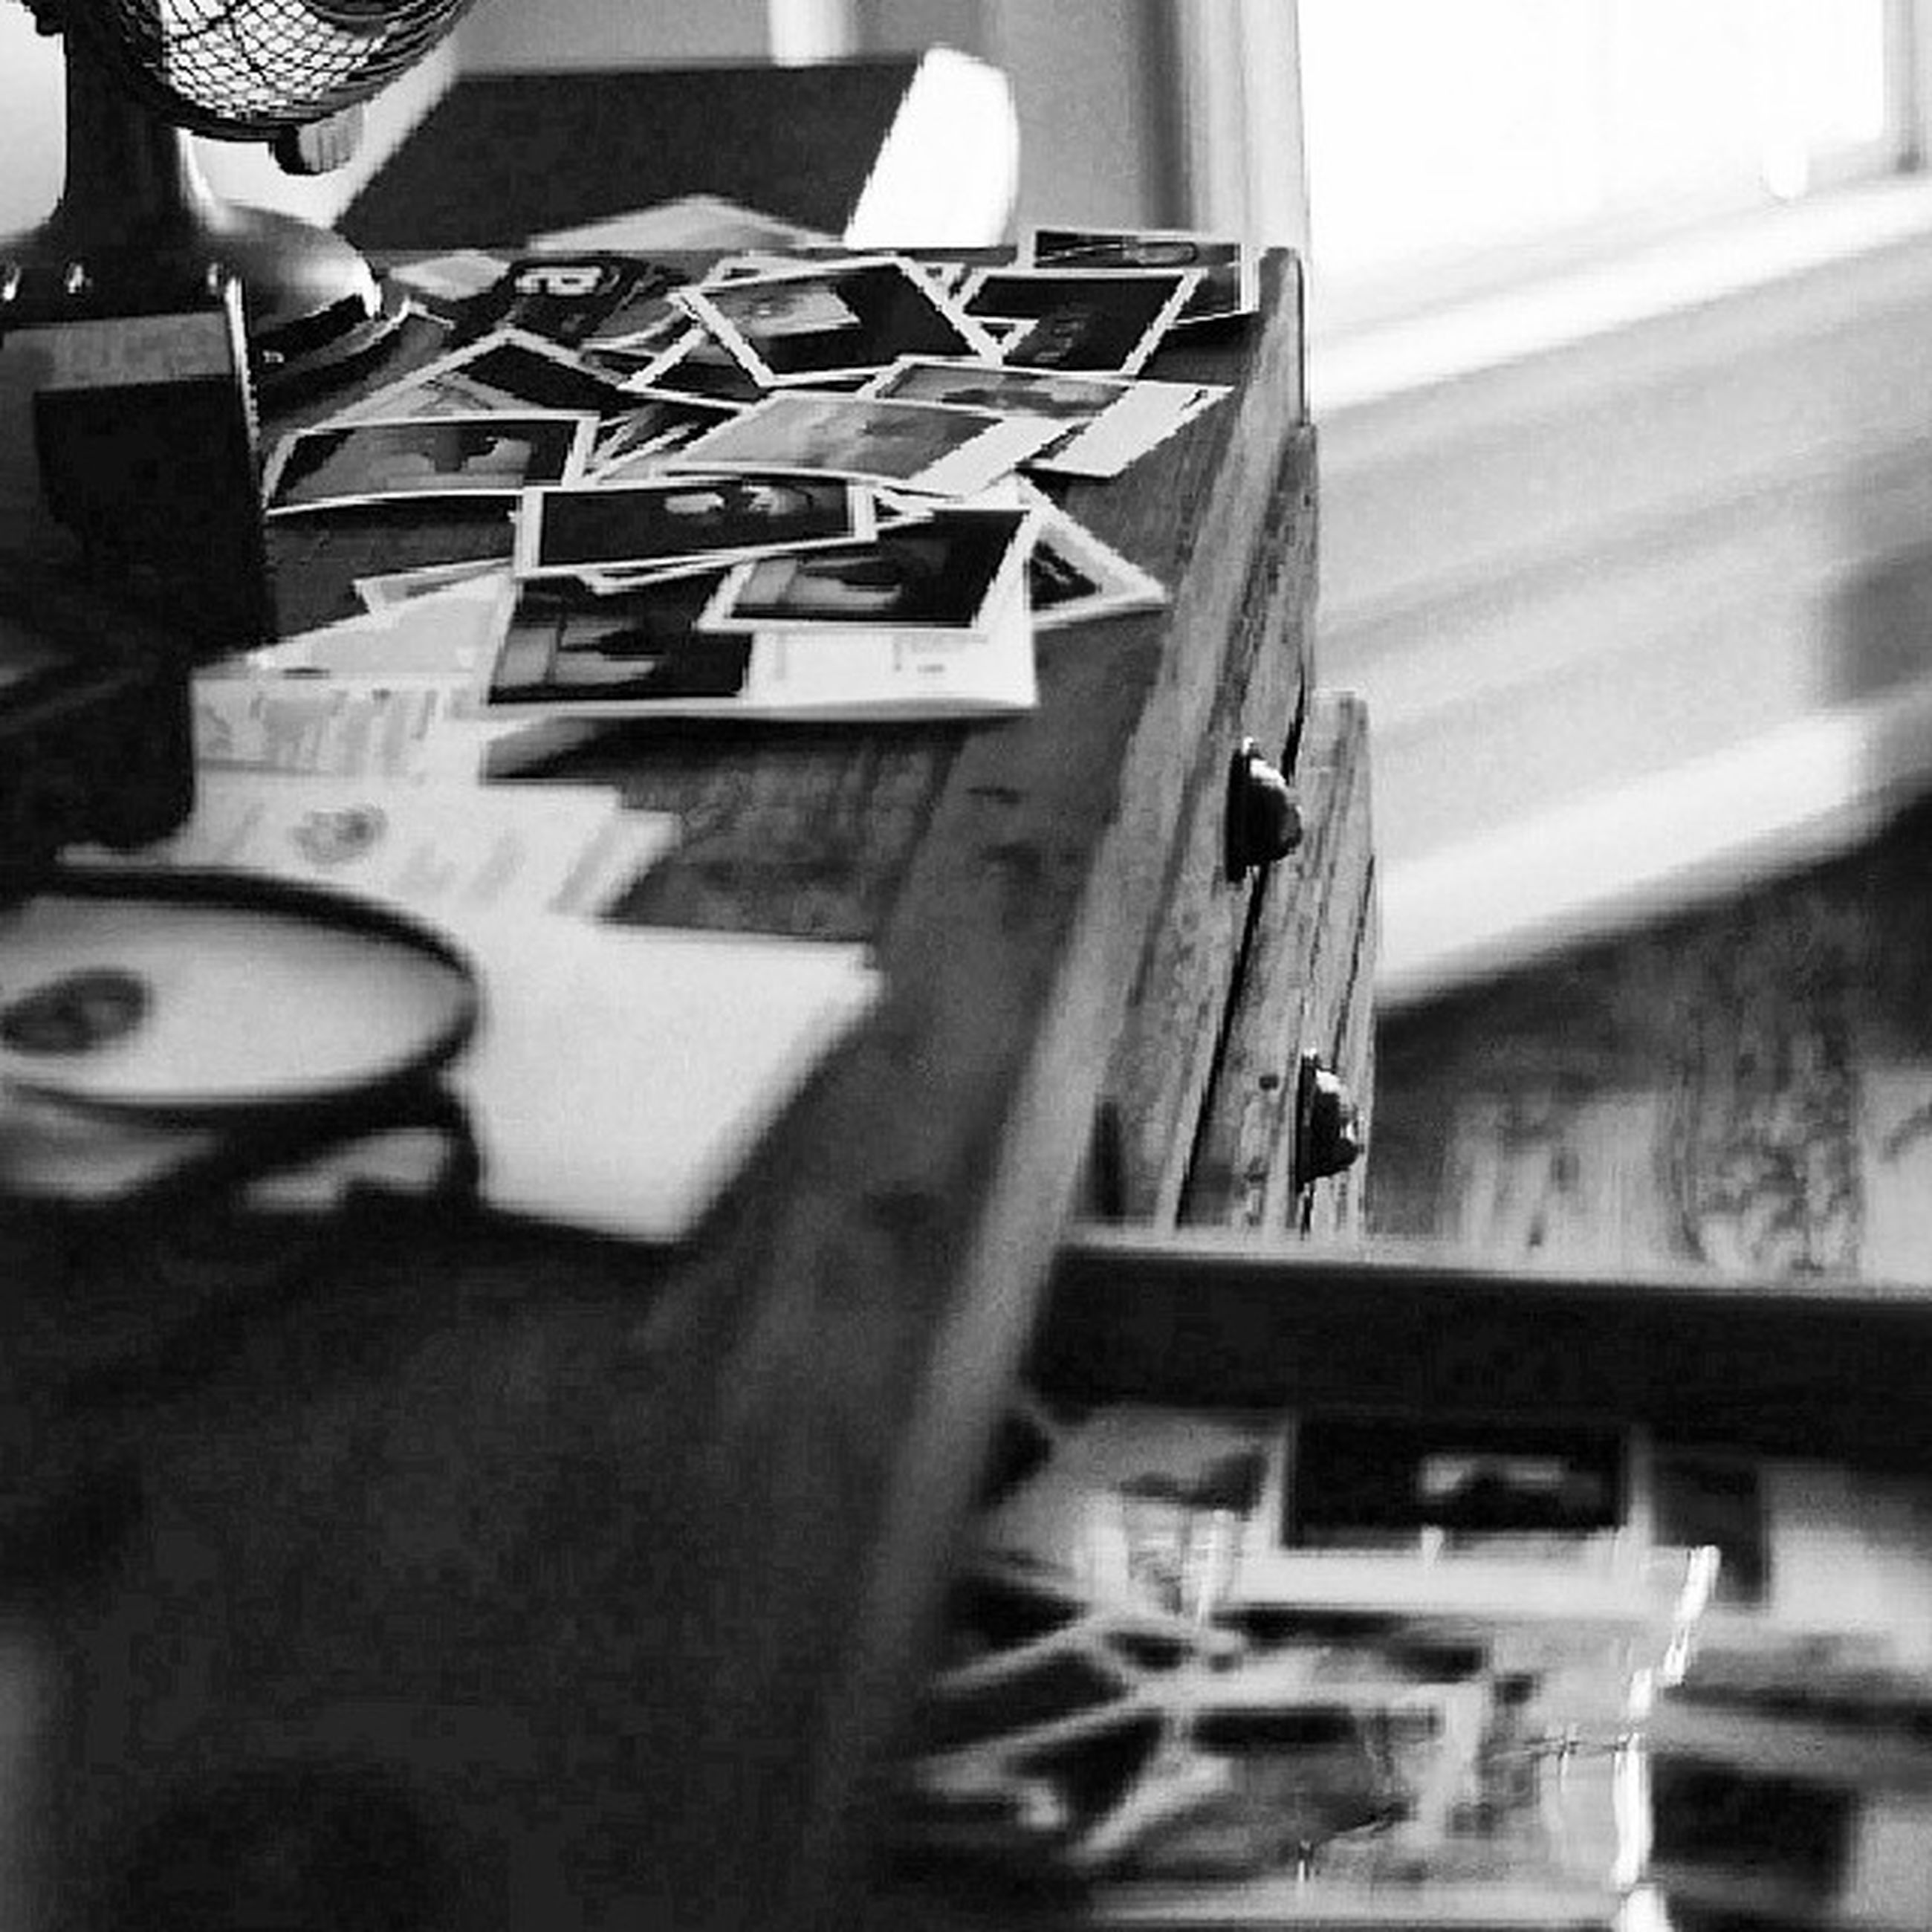 indoors, focus on foreground, table, selective focus, holding, close-up, part of, men, book, wood - material, communication, cropped, person, chair, day, working, home interior